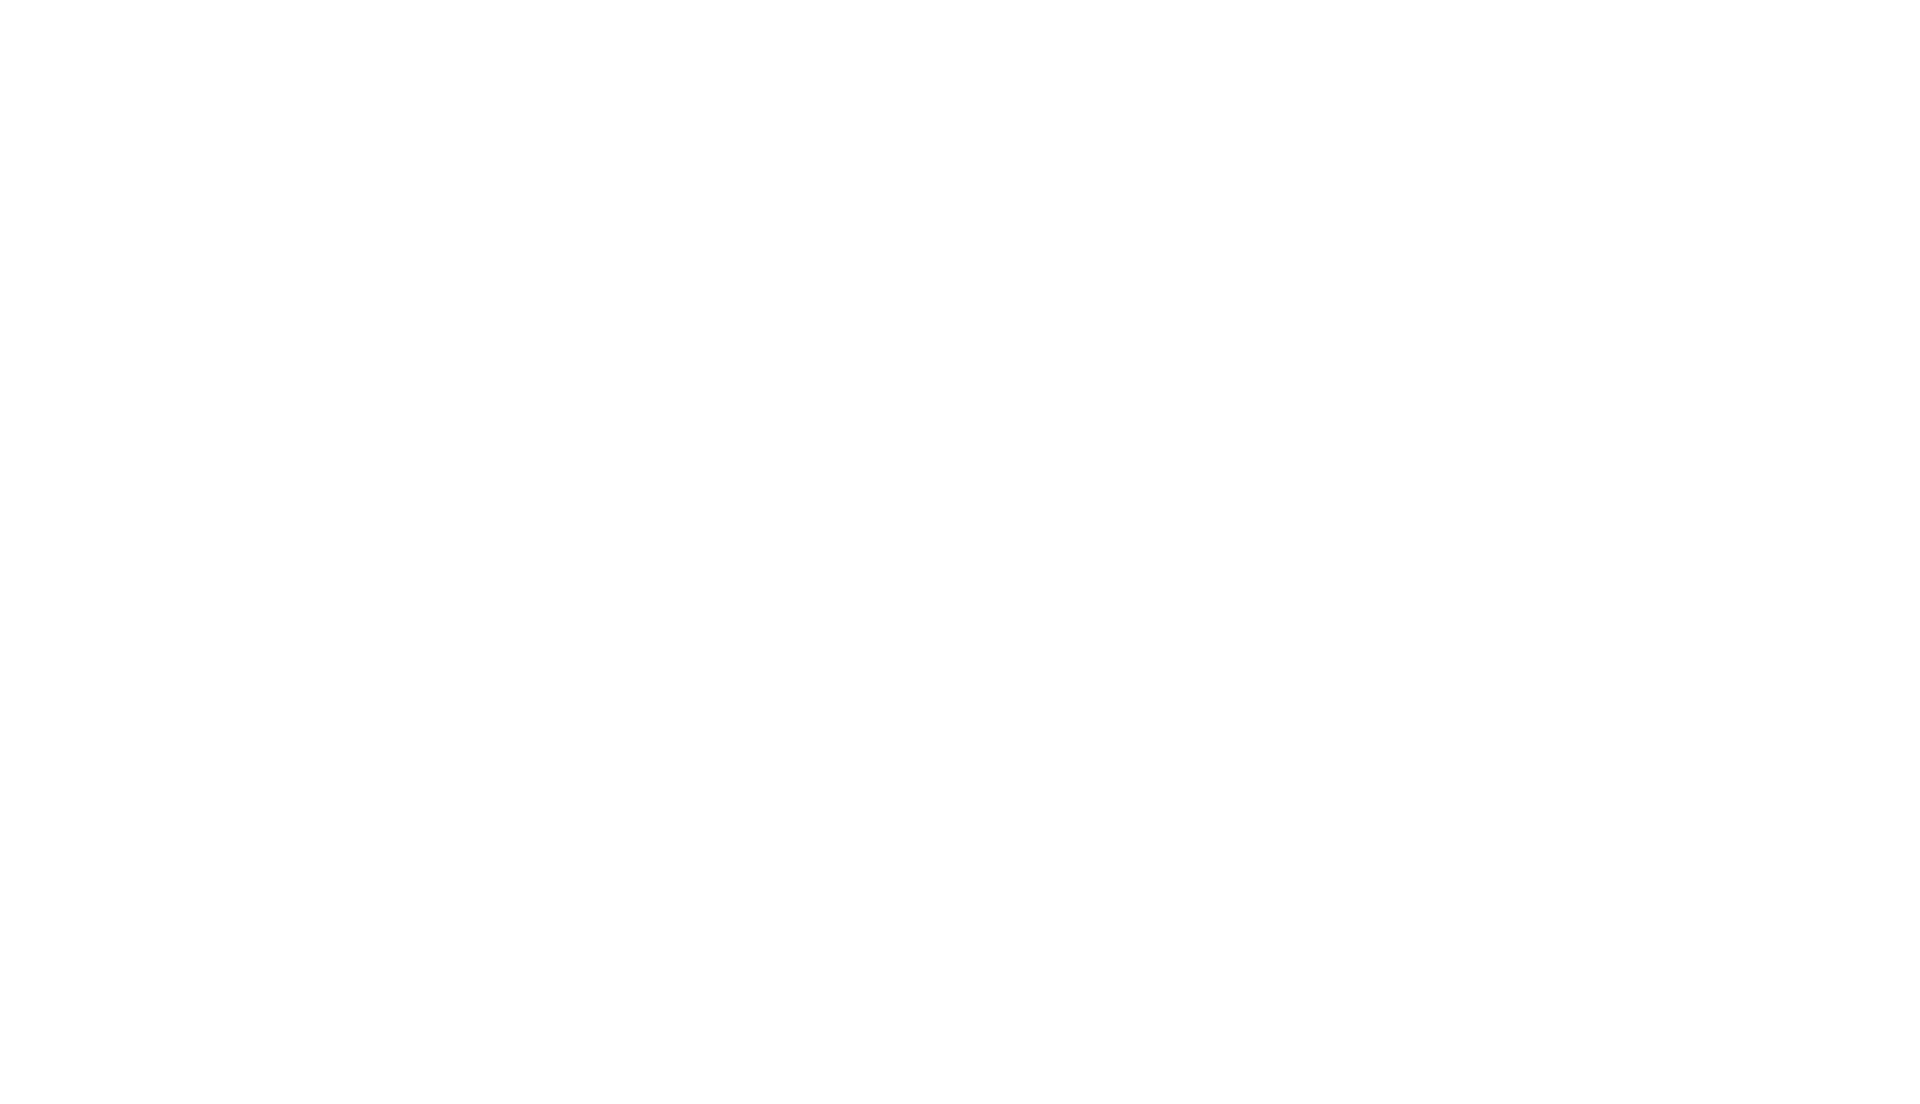 ernie-ball-eagle-white-transparent.png